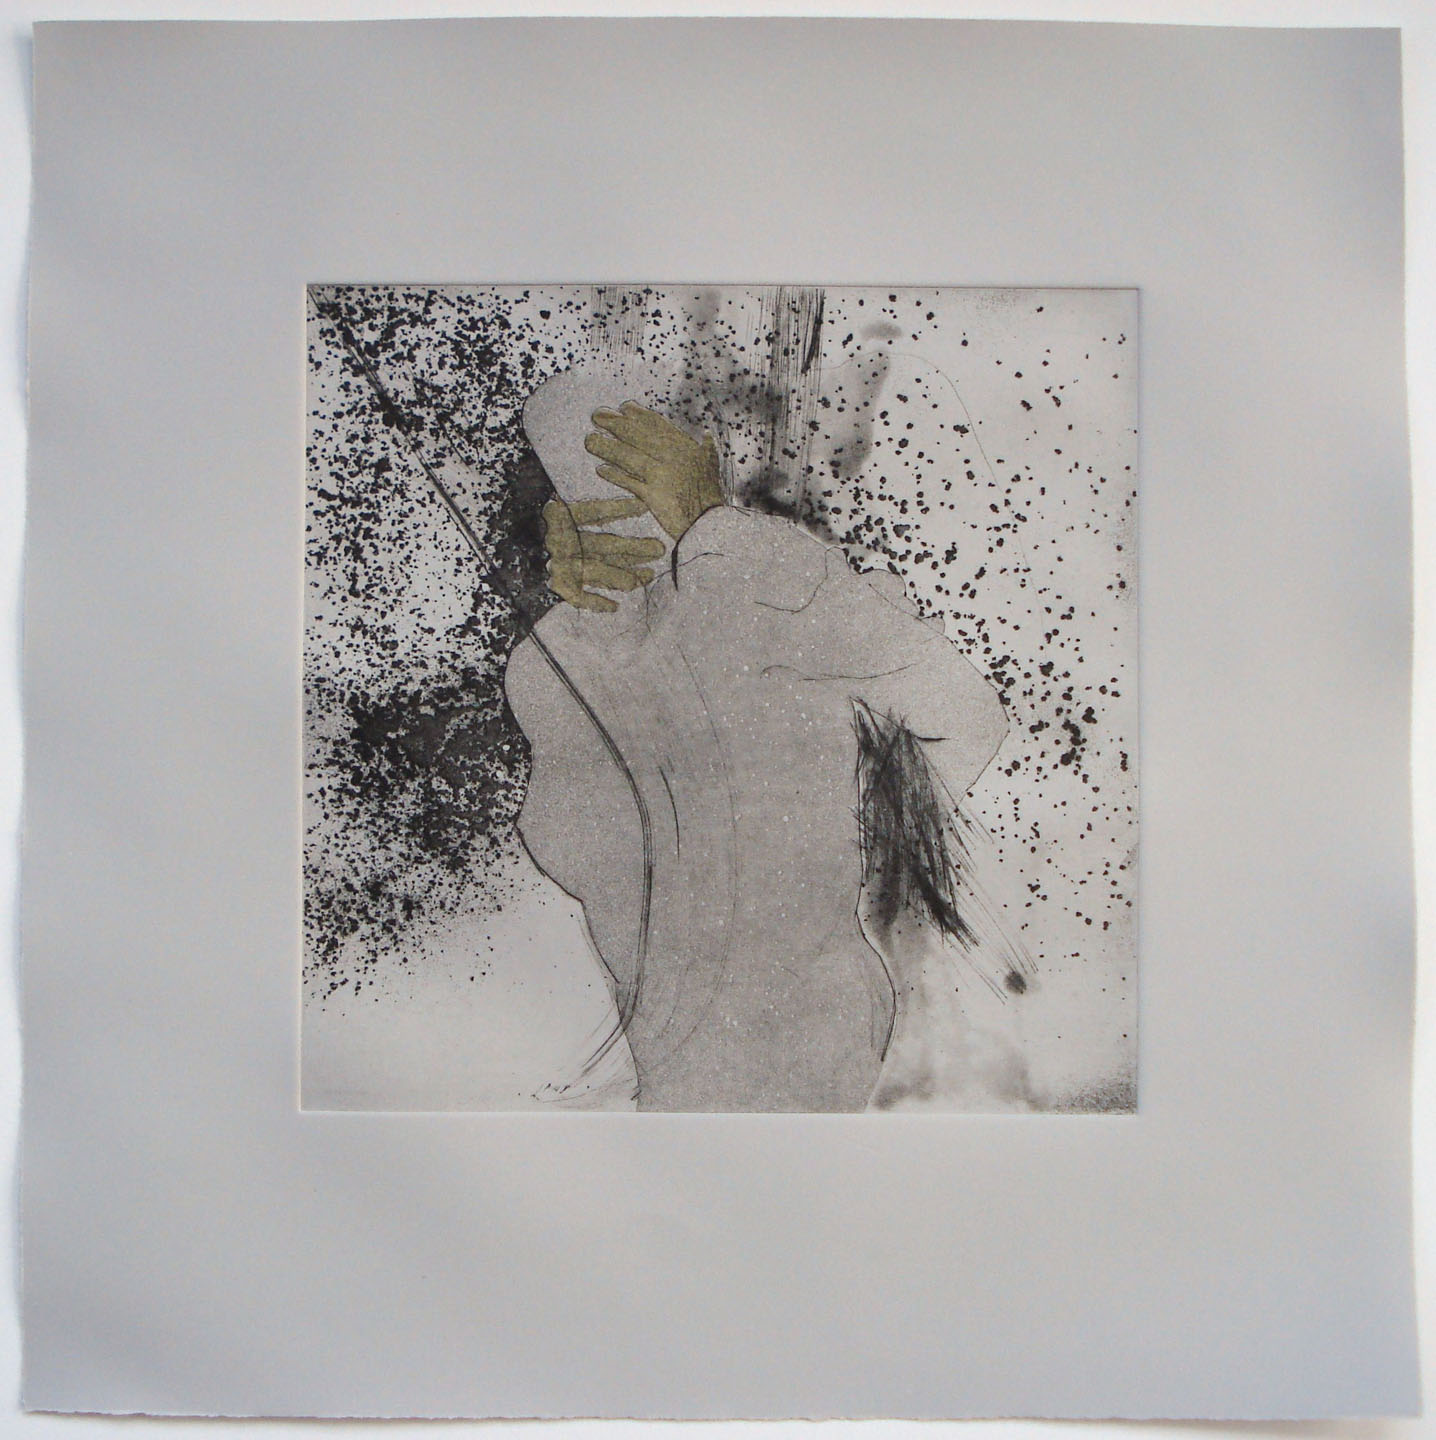 Untitled;2004    Etching/ Chine Colle, 20 x 20 in